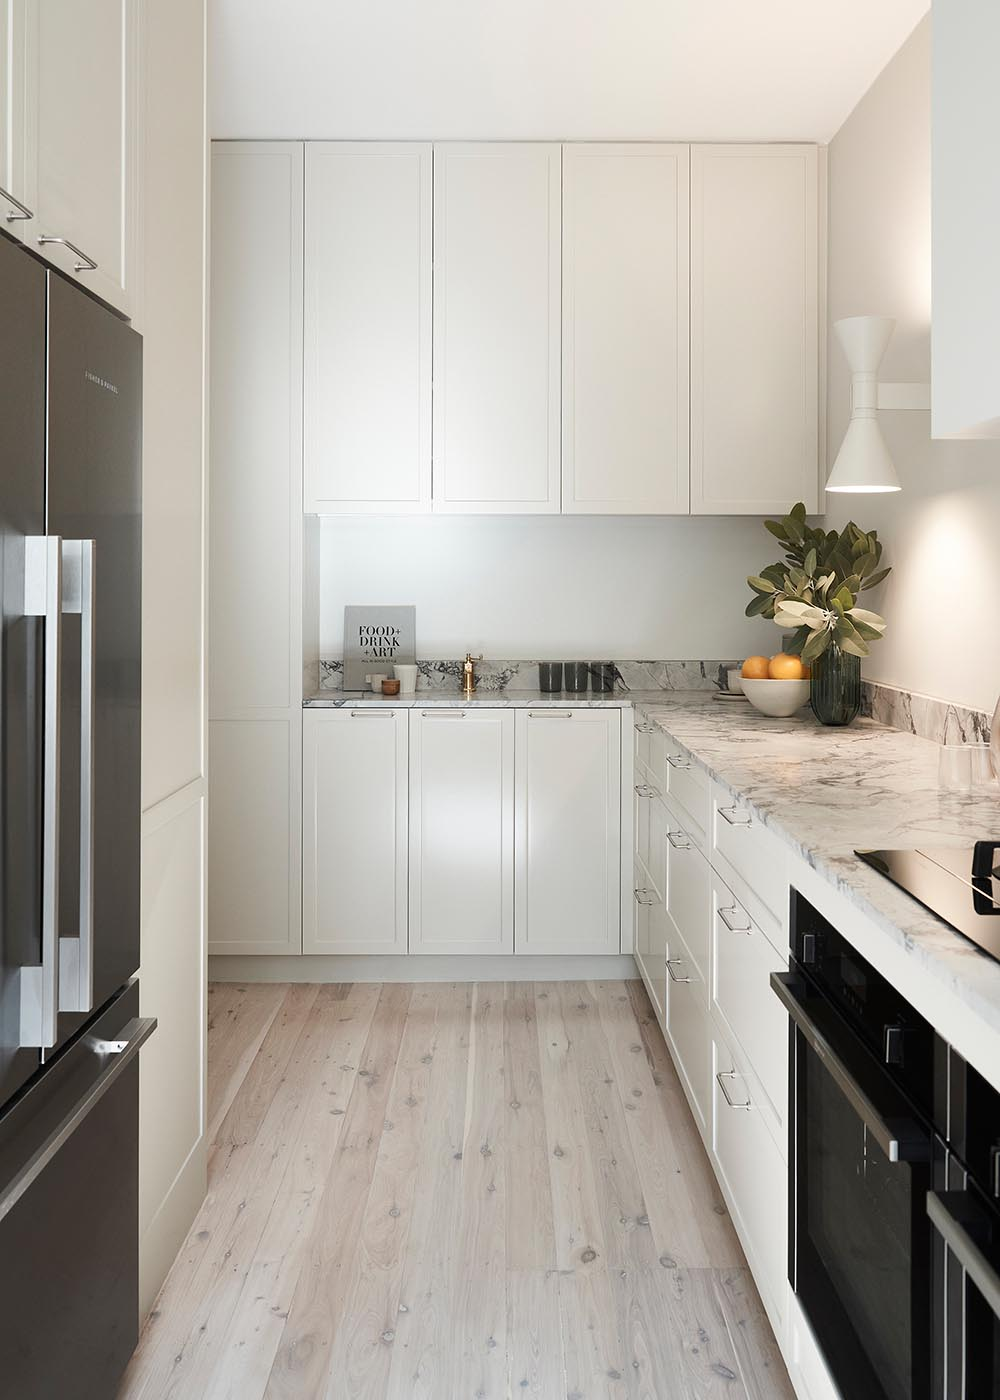 This contemporary kitchen features stone counters, warm textures, handmade tiles, and pale toned cabinetry that complement the other design choices throughout the apartment.